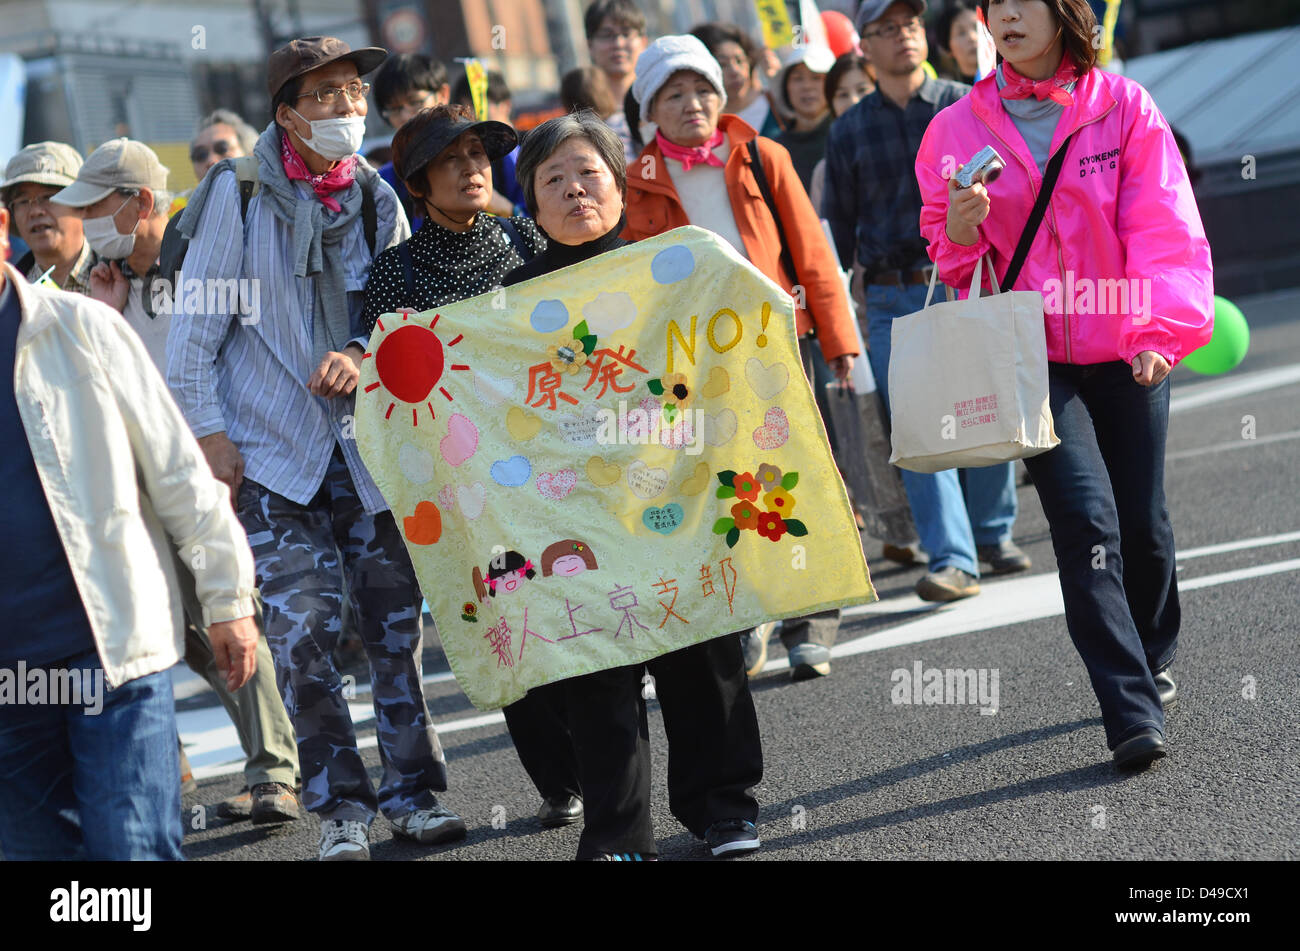 Kyoto, Japan. 9th March 2013. Protesters march through Kyoto against the restart of the country's nuclear power Stock Photo